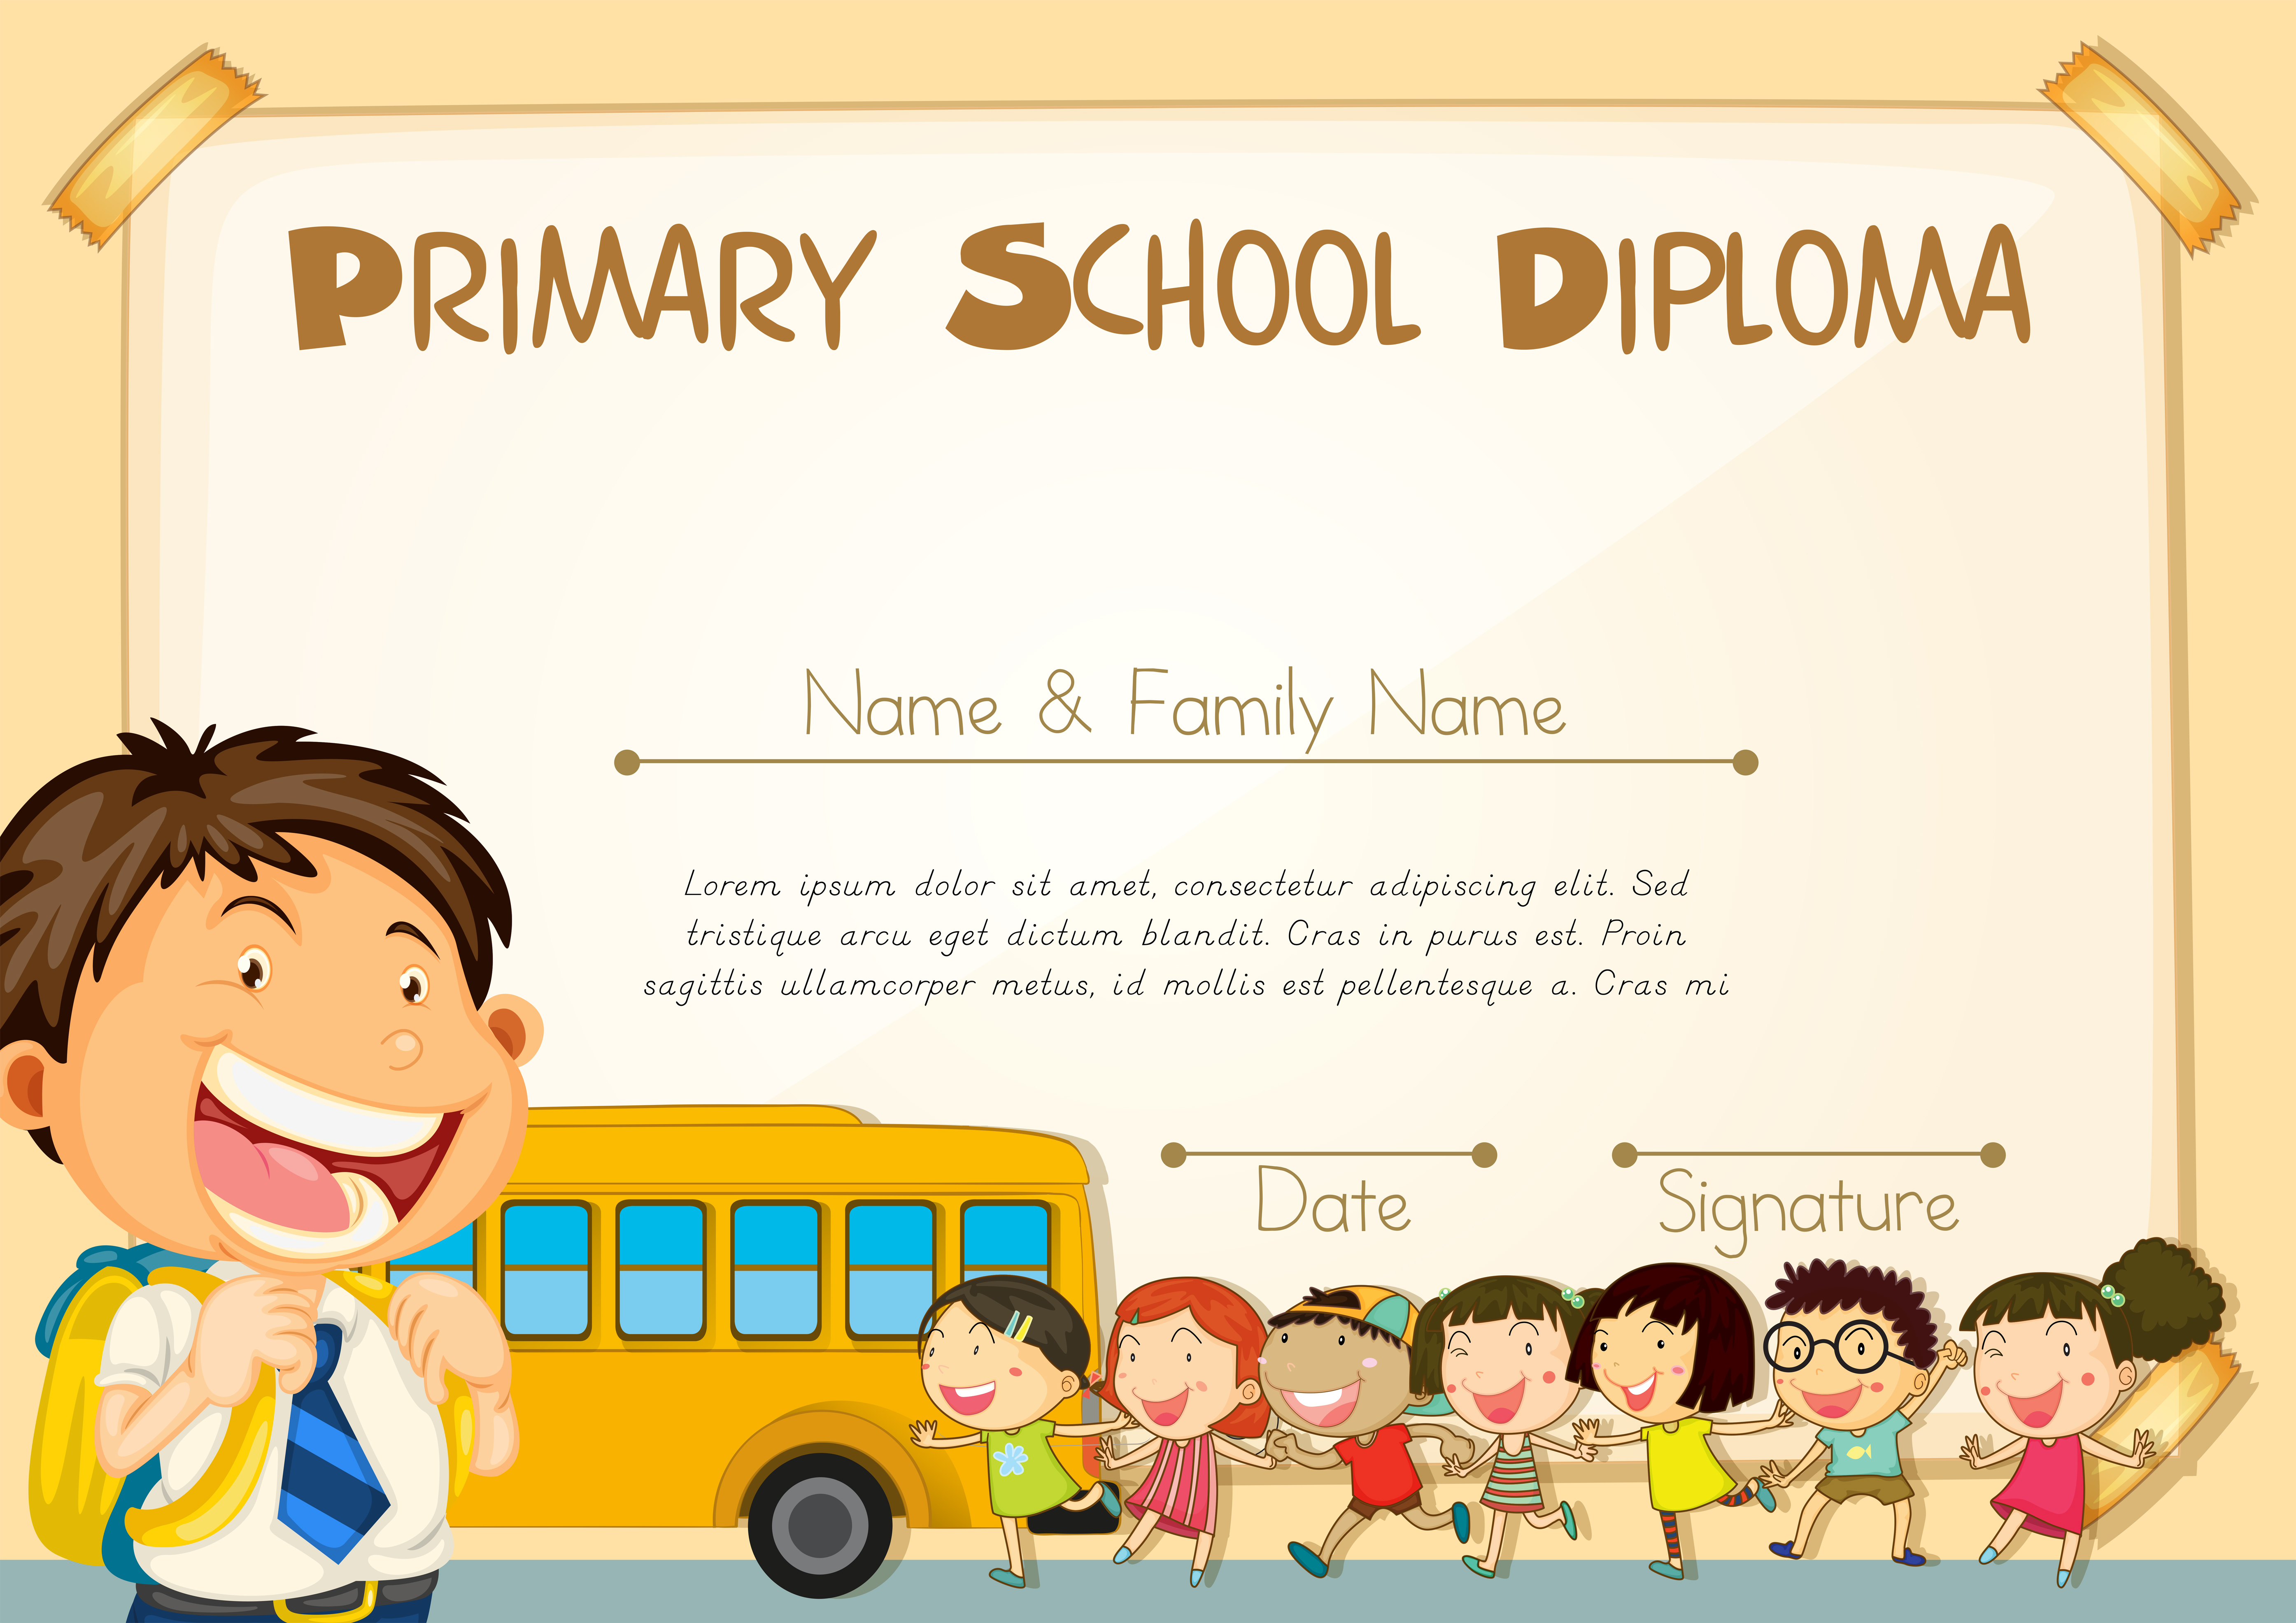 Diploma Template With Children And Schoolbus